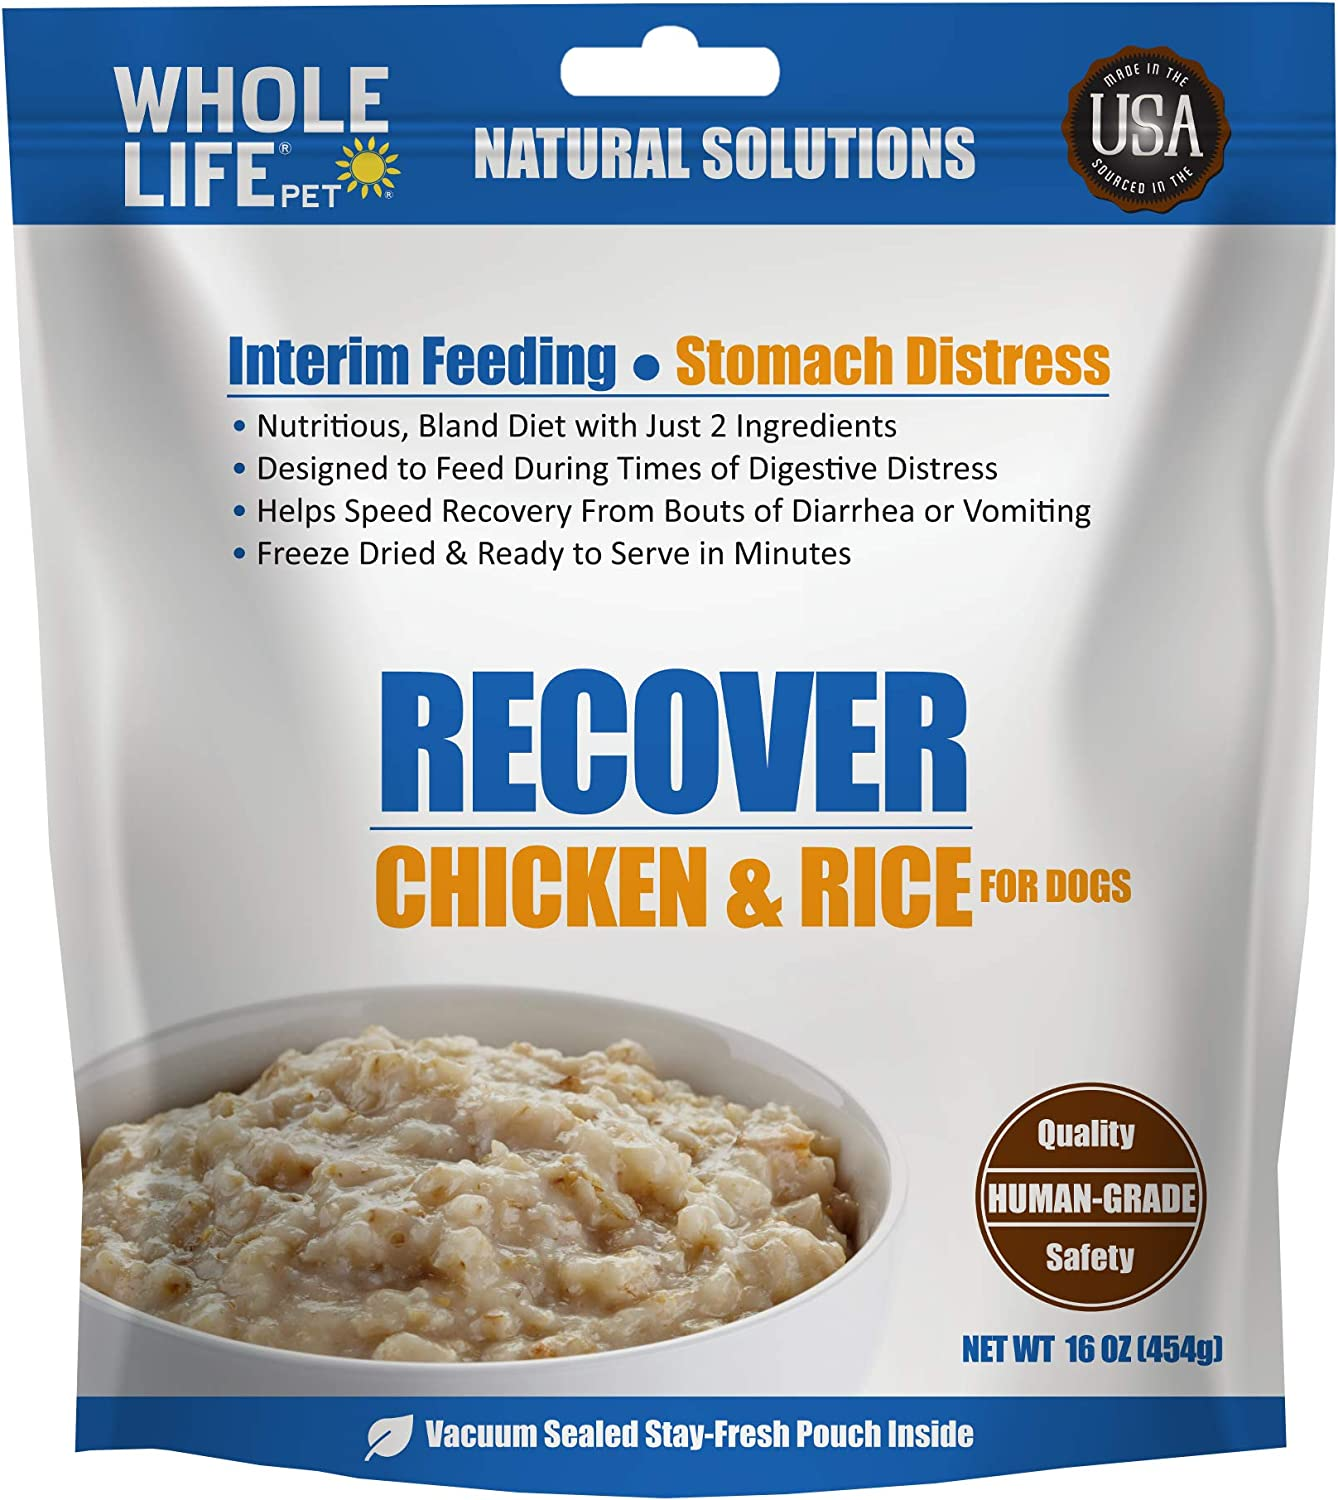 Whole Life Pet Products Recover Freeze Dried Human Grade Chicken & Rice, Nutritious Bland Diet, Diarrhea, Vomiting, Digestive Distress for Dogs 16oz, Blue (CR099)